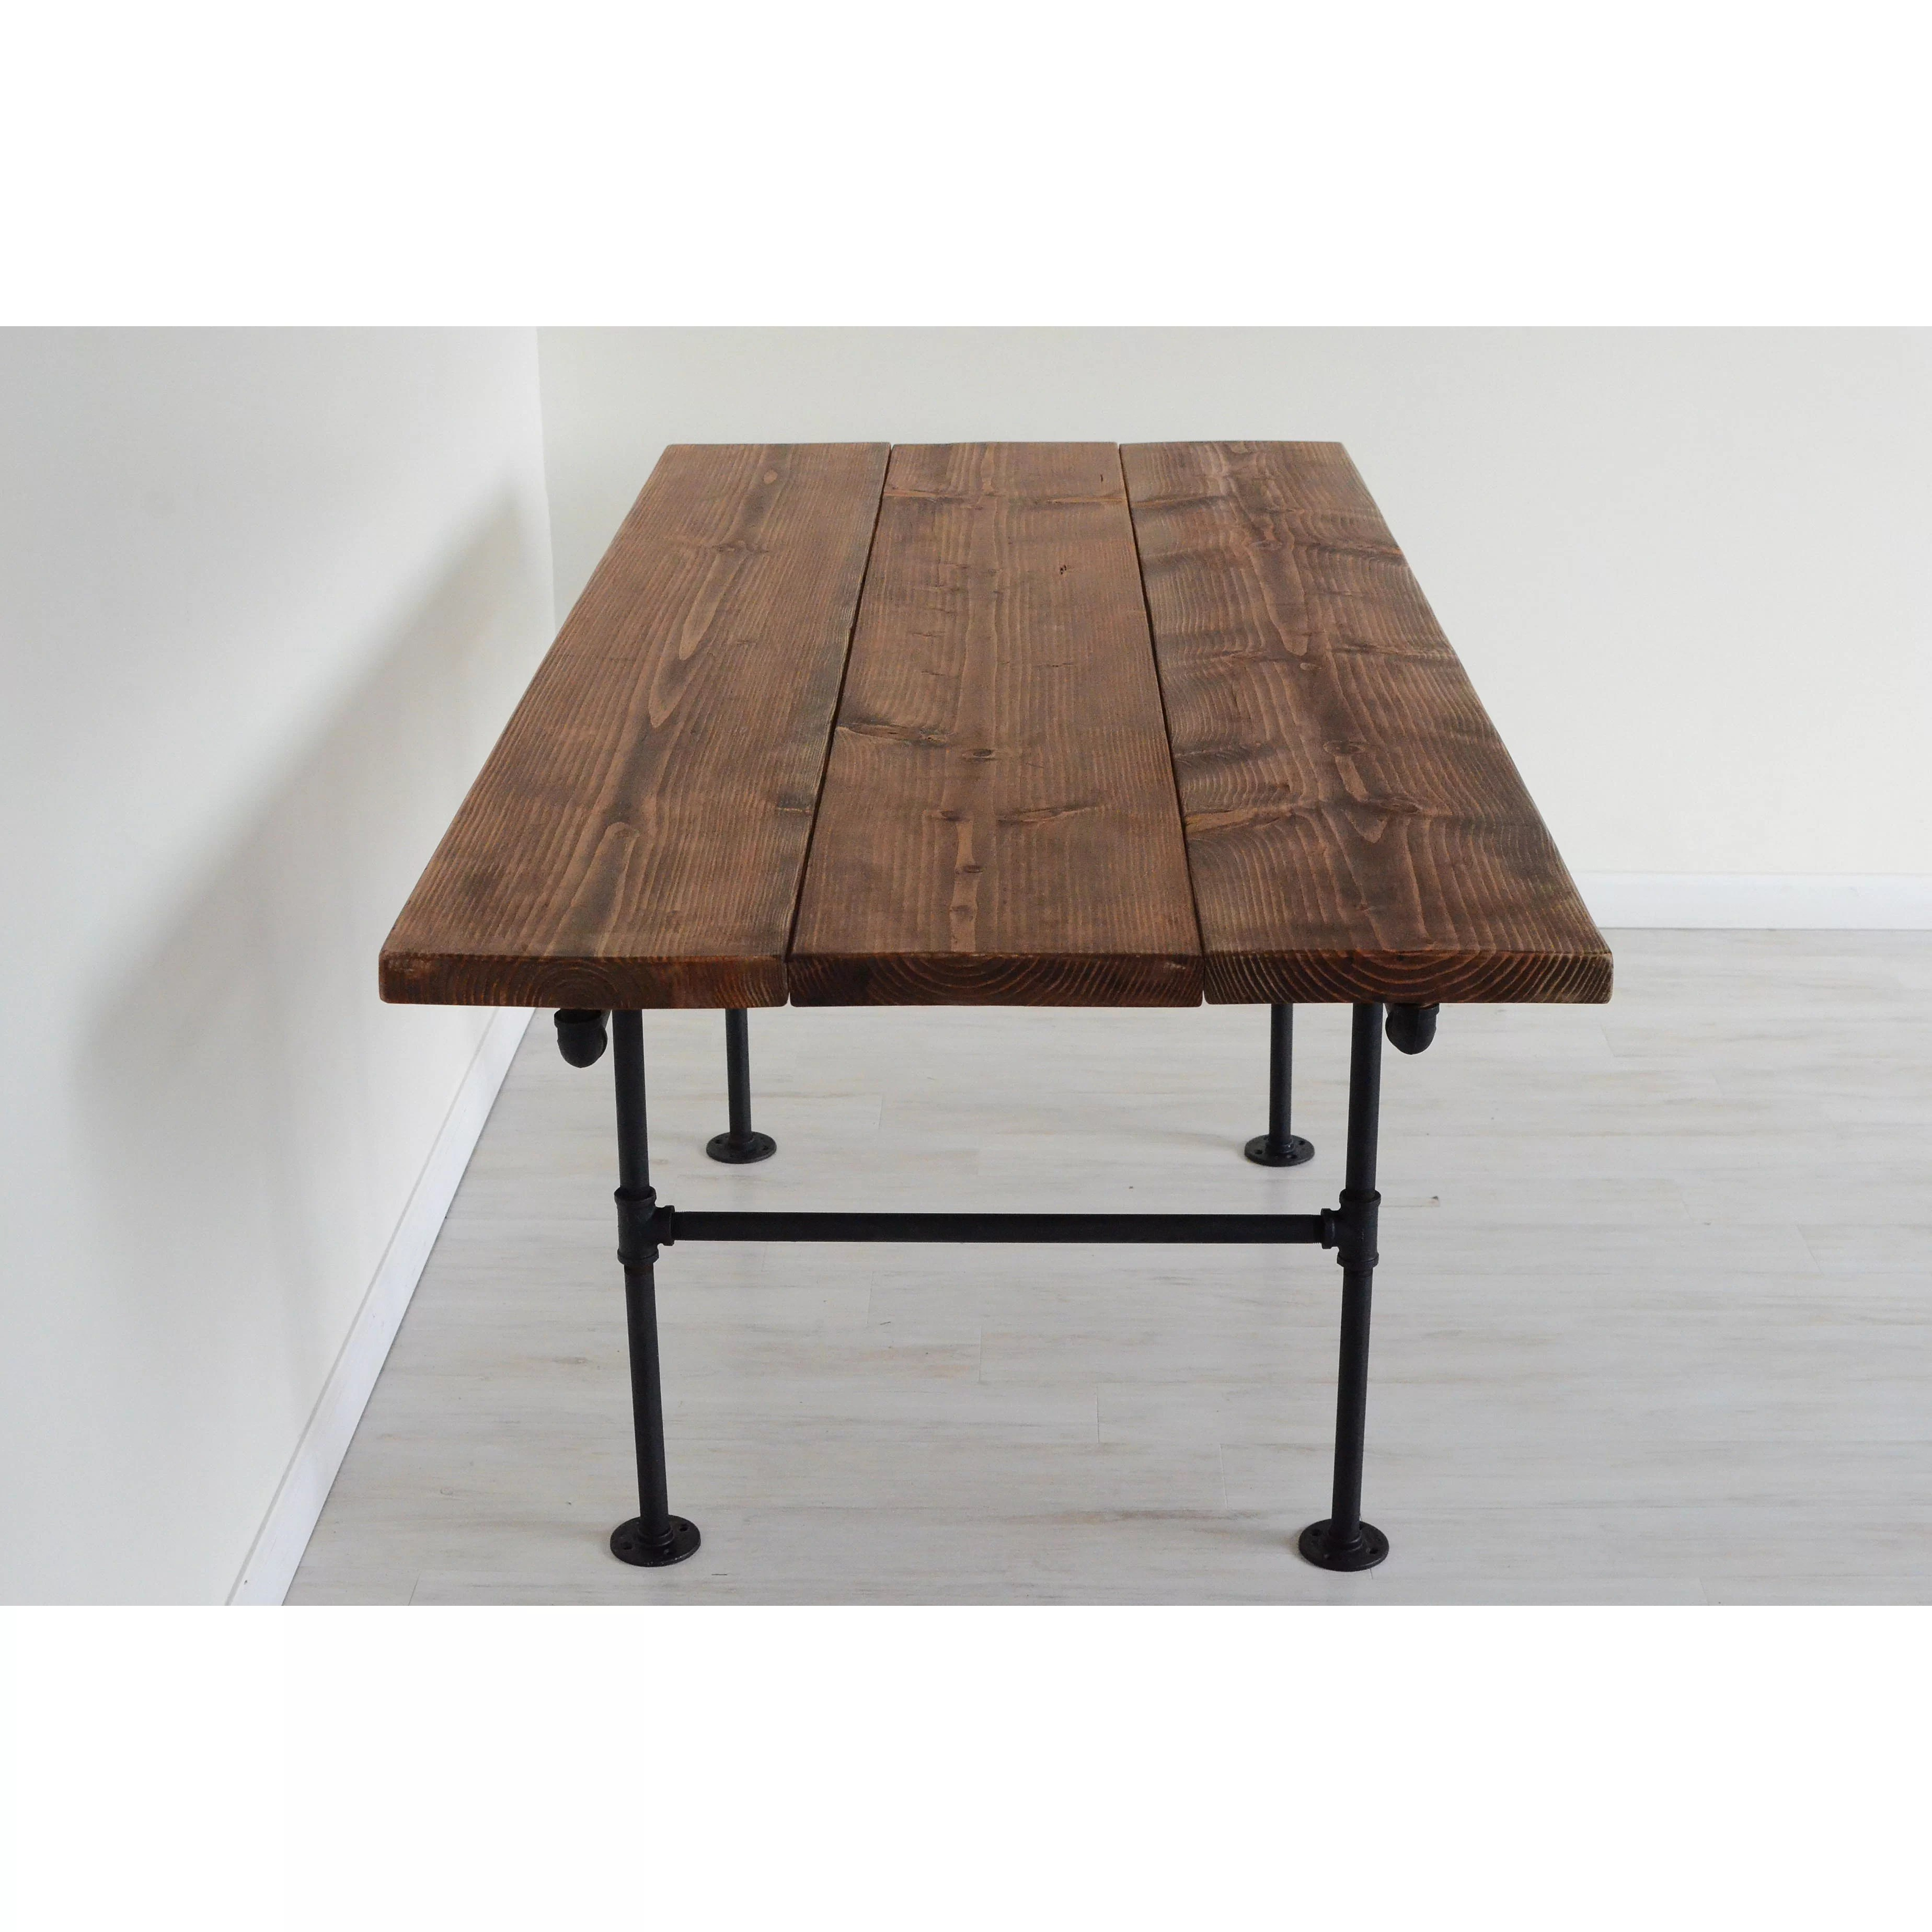 6 Ft Square Dining Table Brandtworksllc American Iron Pipe 6 Foot Dining Table